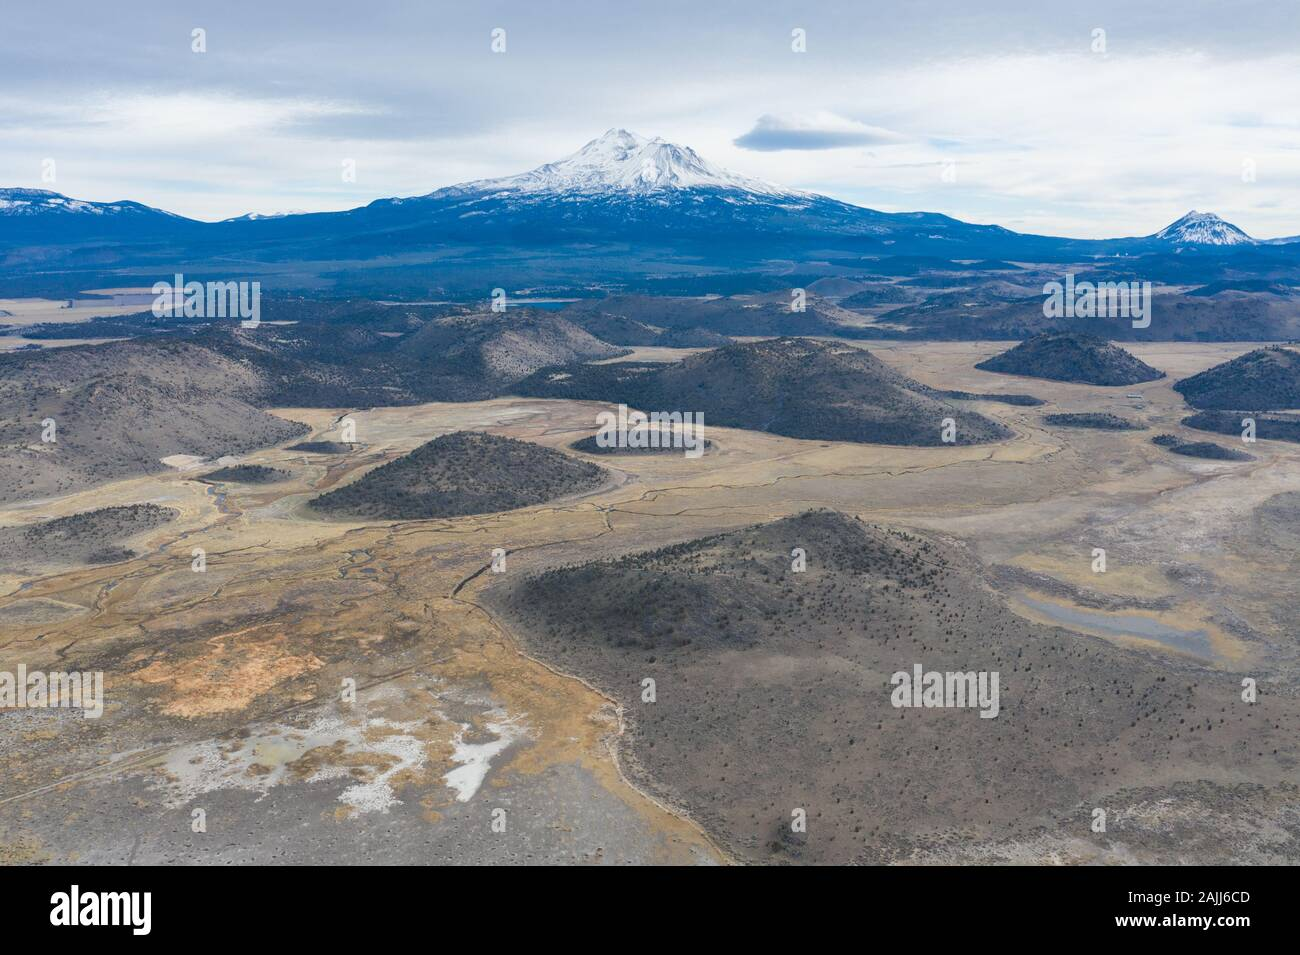 Mount Shasta in northern California is among the largest and most active volcanoes in the Cascade Range. The peak reaches 14,160 feet in height. Stock Photo